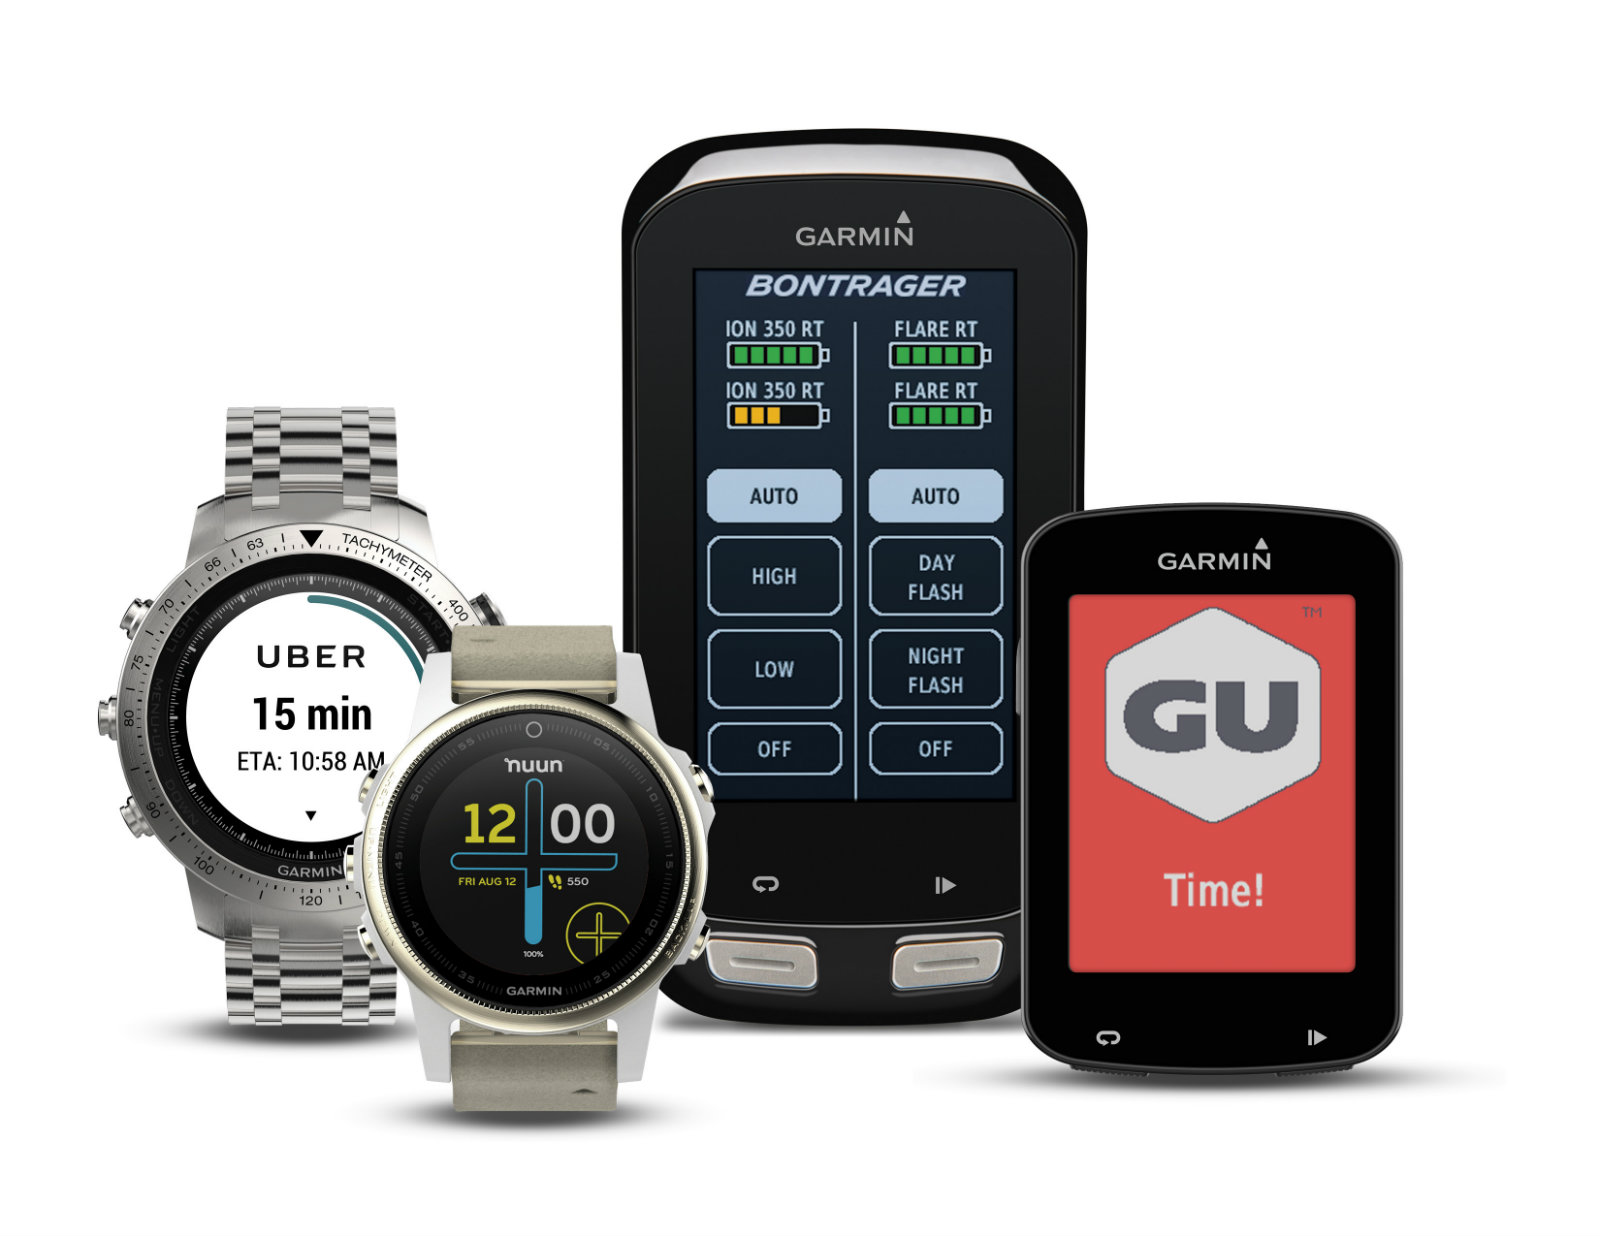 Garmin's watch-app store finally gets Uber and a few other